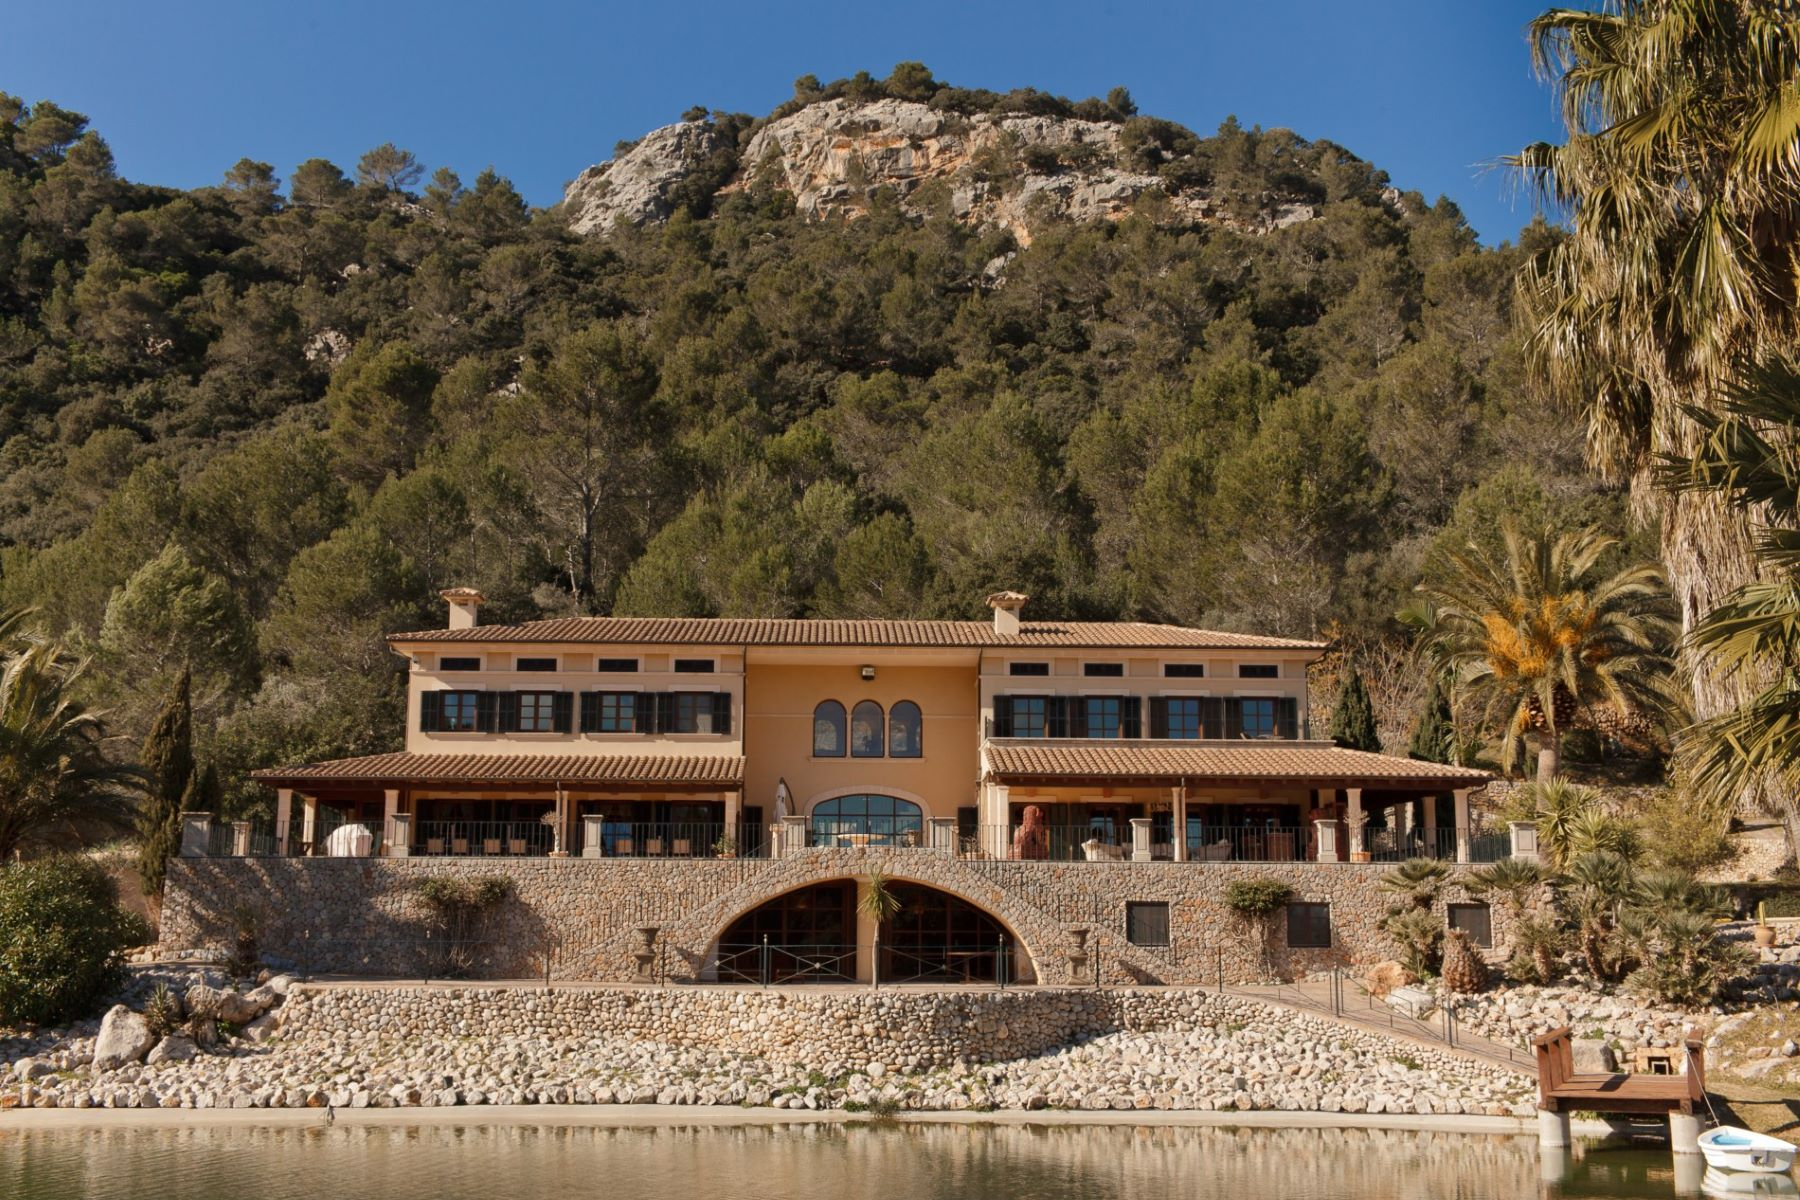 Apartamentos multi-familiares para Venda às Unique and luxurious mansion in the mountains Esporles, Palma De Maiorca, 07190 Espanha